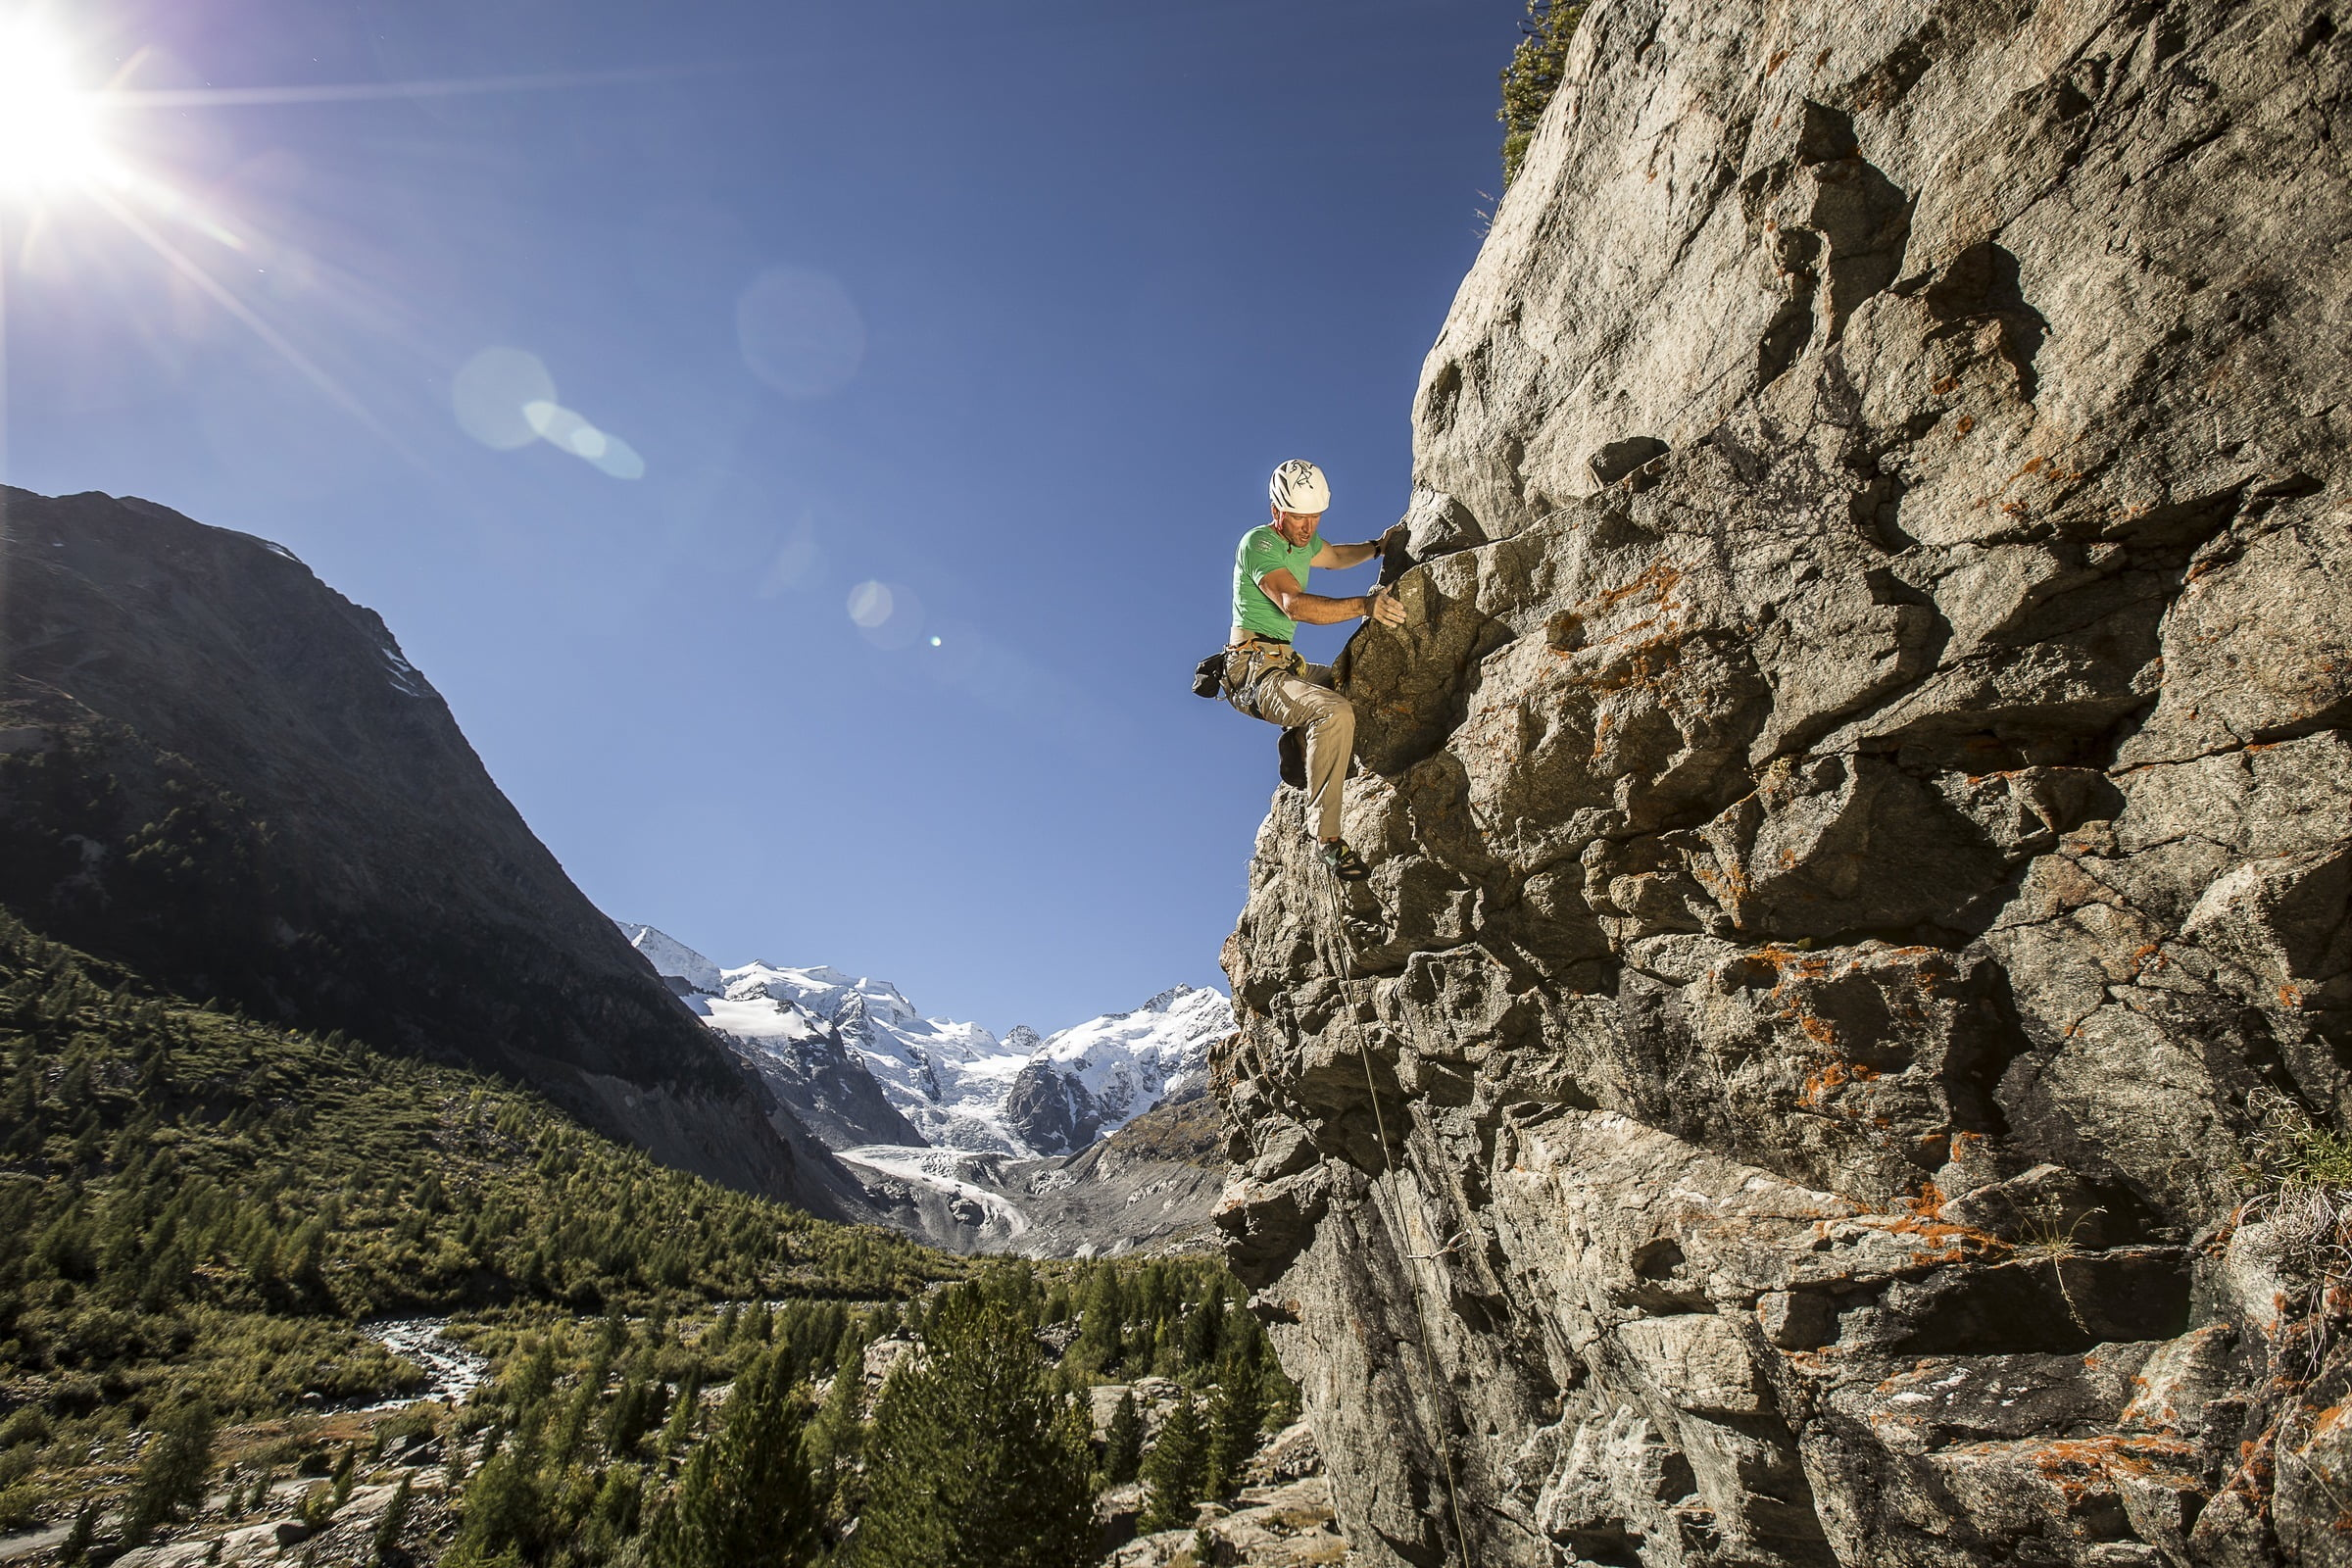 Climbing in a spectacular setting